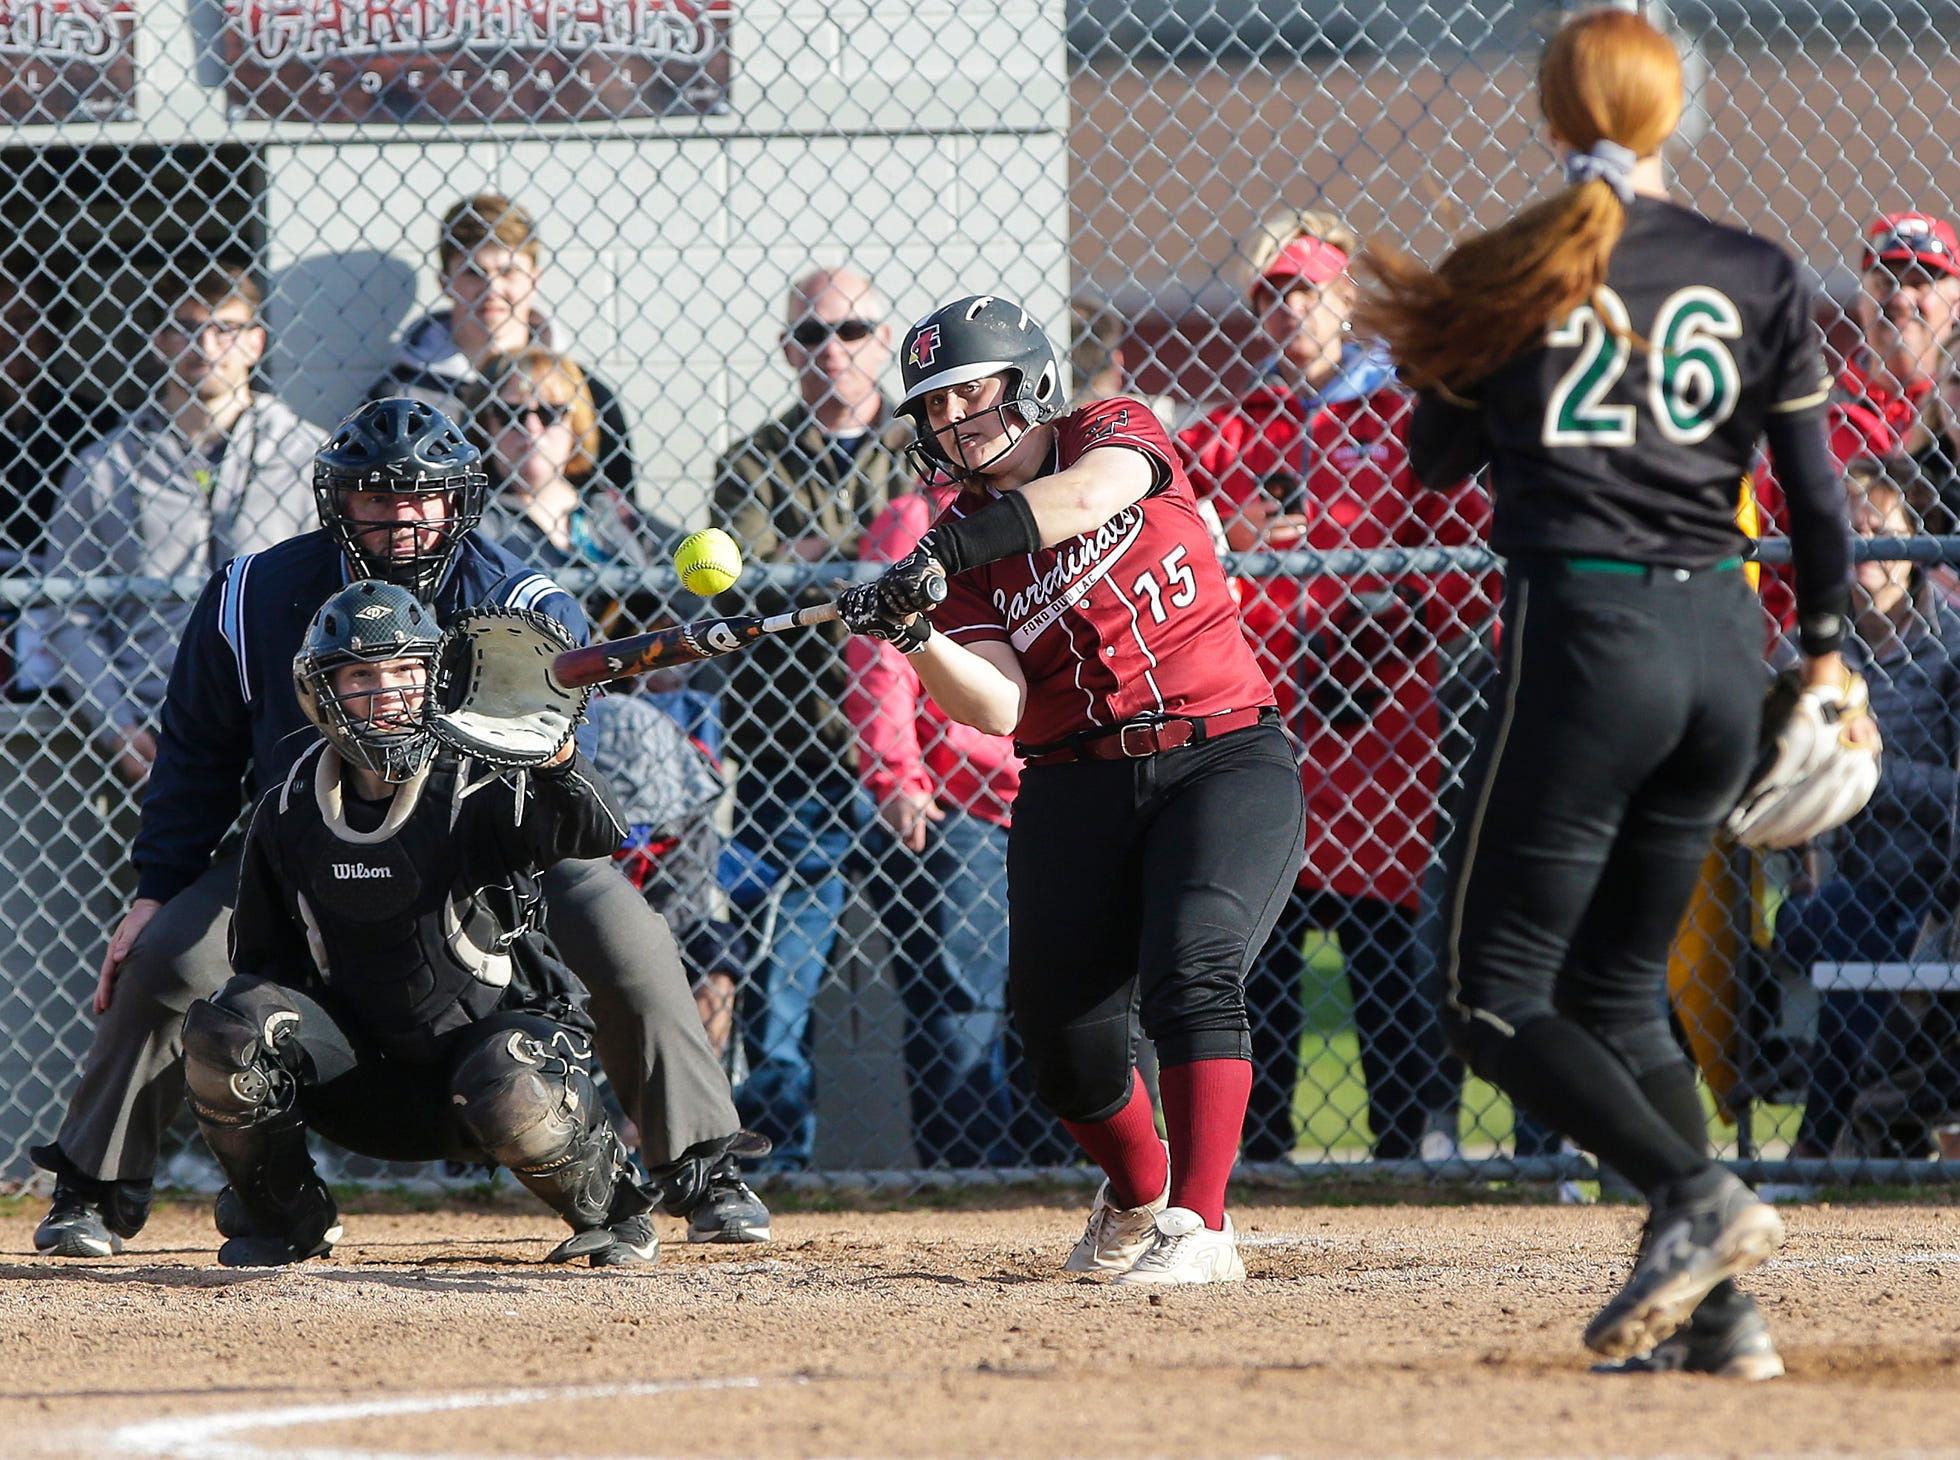 Fond du Lac High School softball's Lexi Nett swings at a pitch against Oshkosh North High School during their game Friday, April 26, 2019 in Fond du Lac, Wis. Doug Raflik/USA TODAY NETWORK-Wisconsin